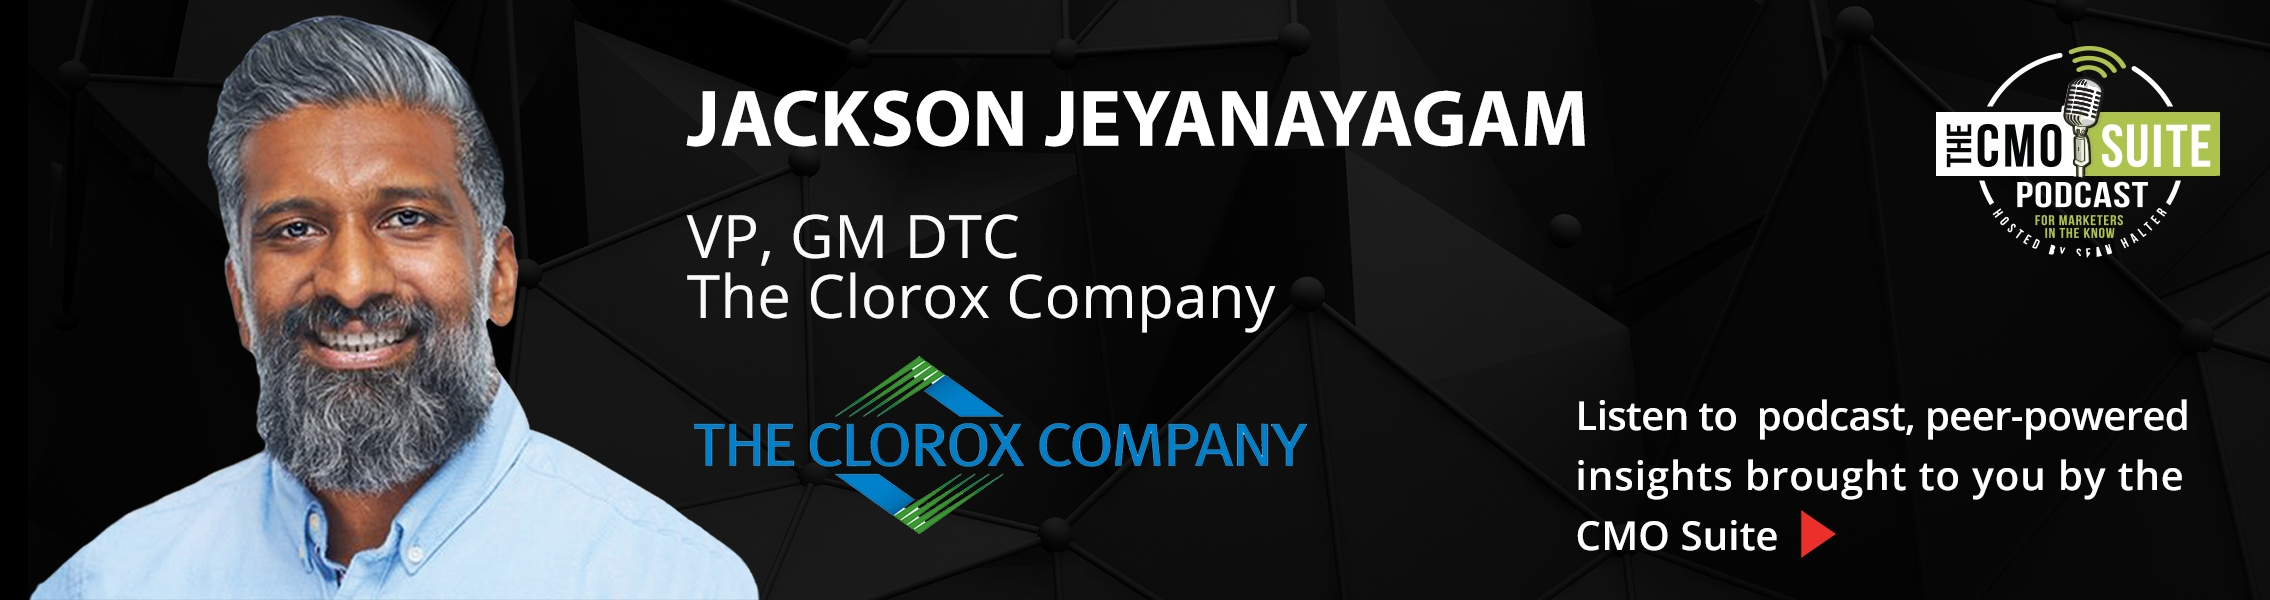 Listen to podcast - Jackson Jeyanayagam, The Clorox Company